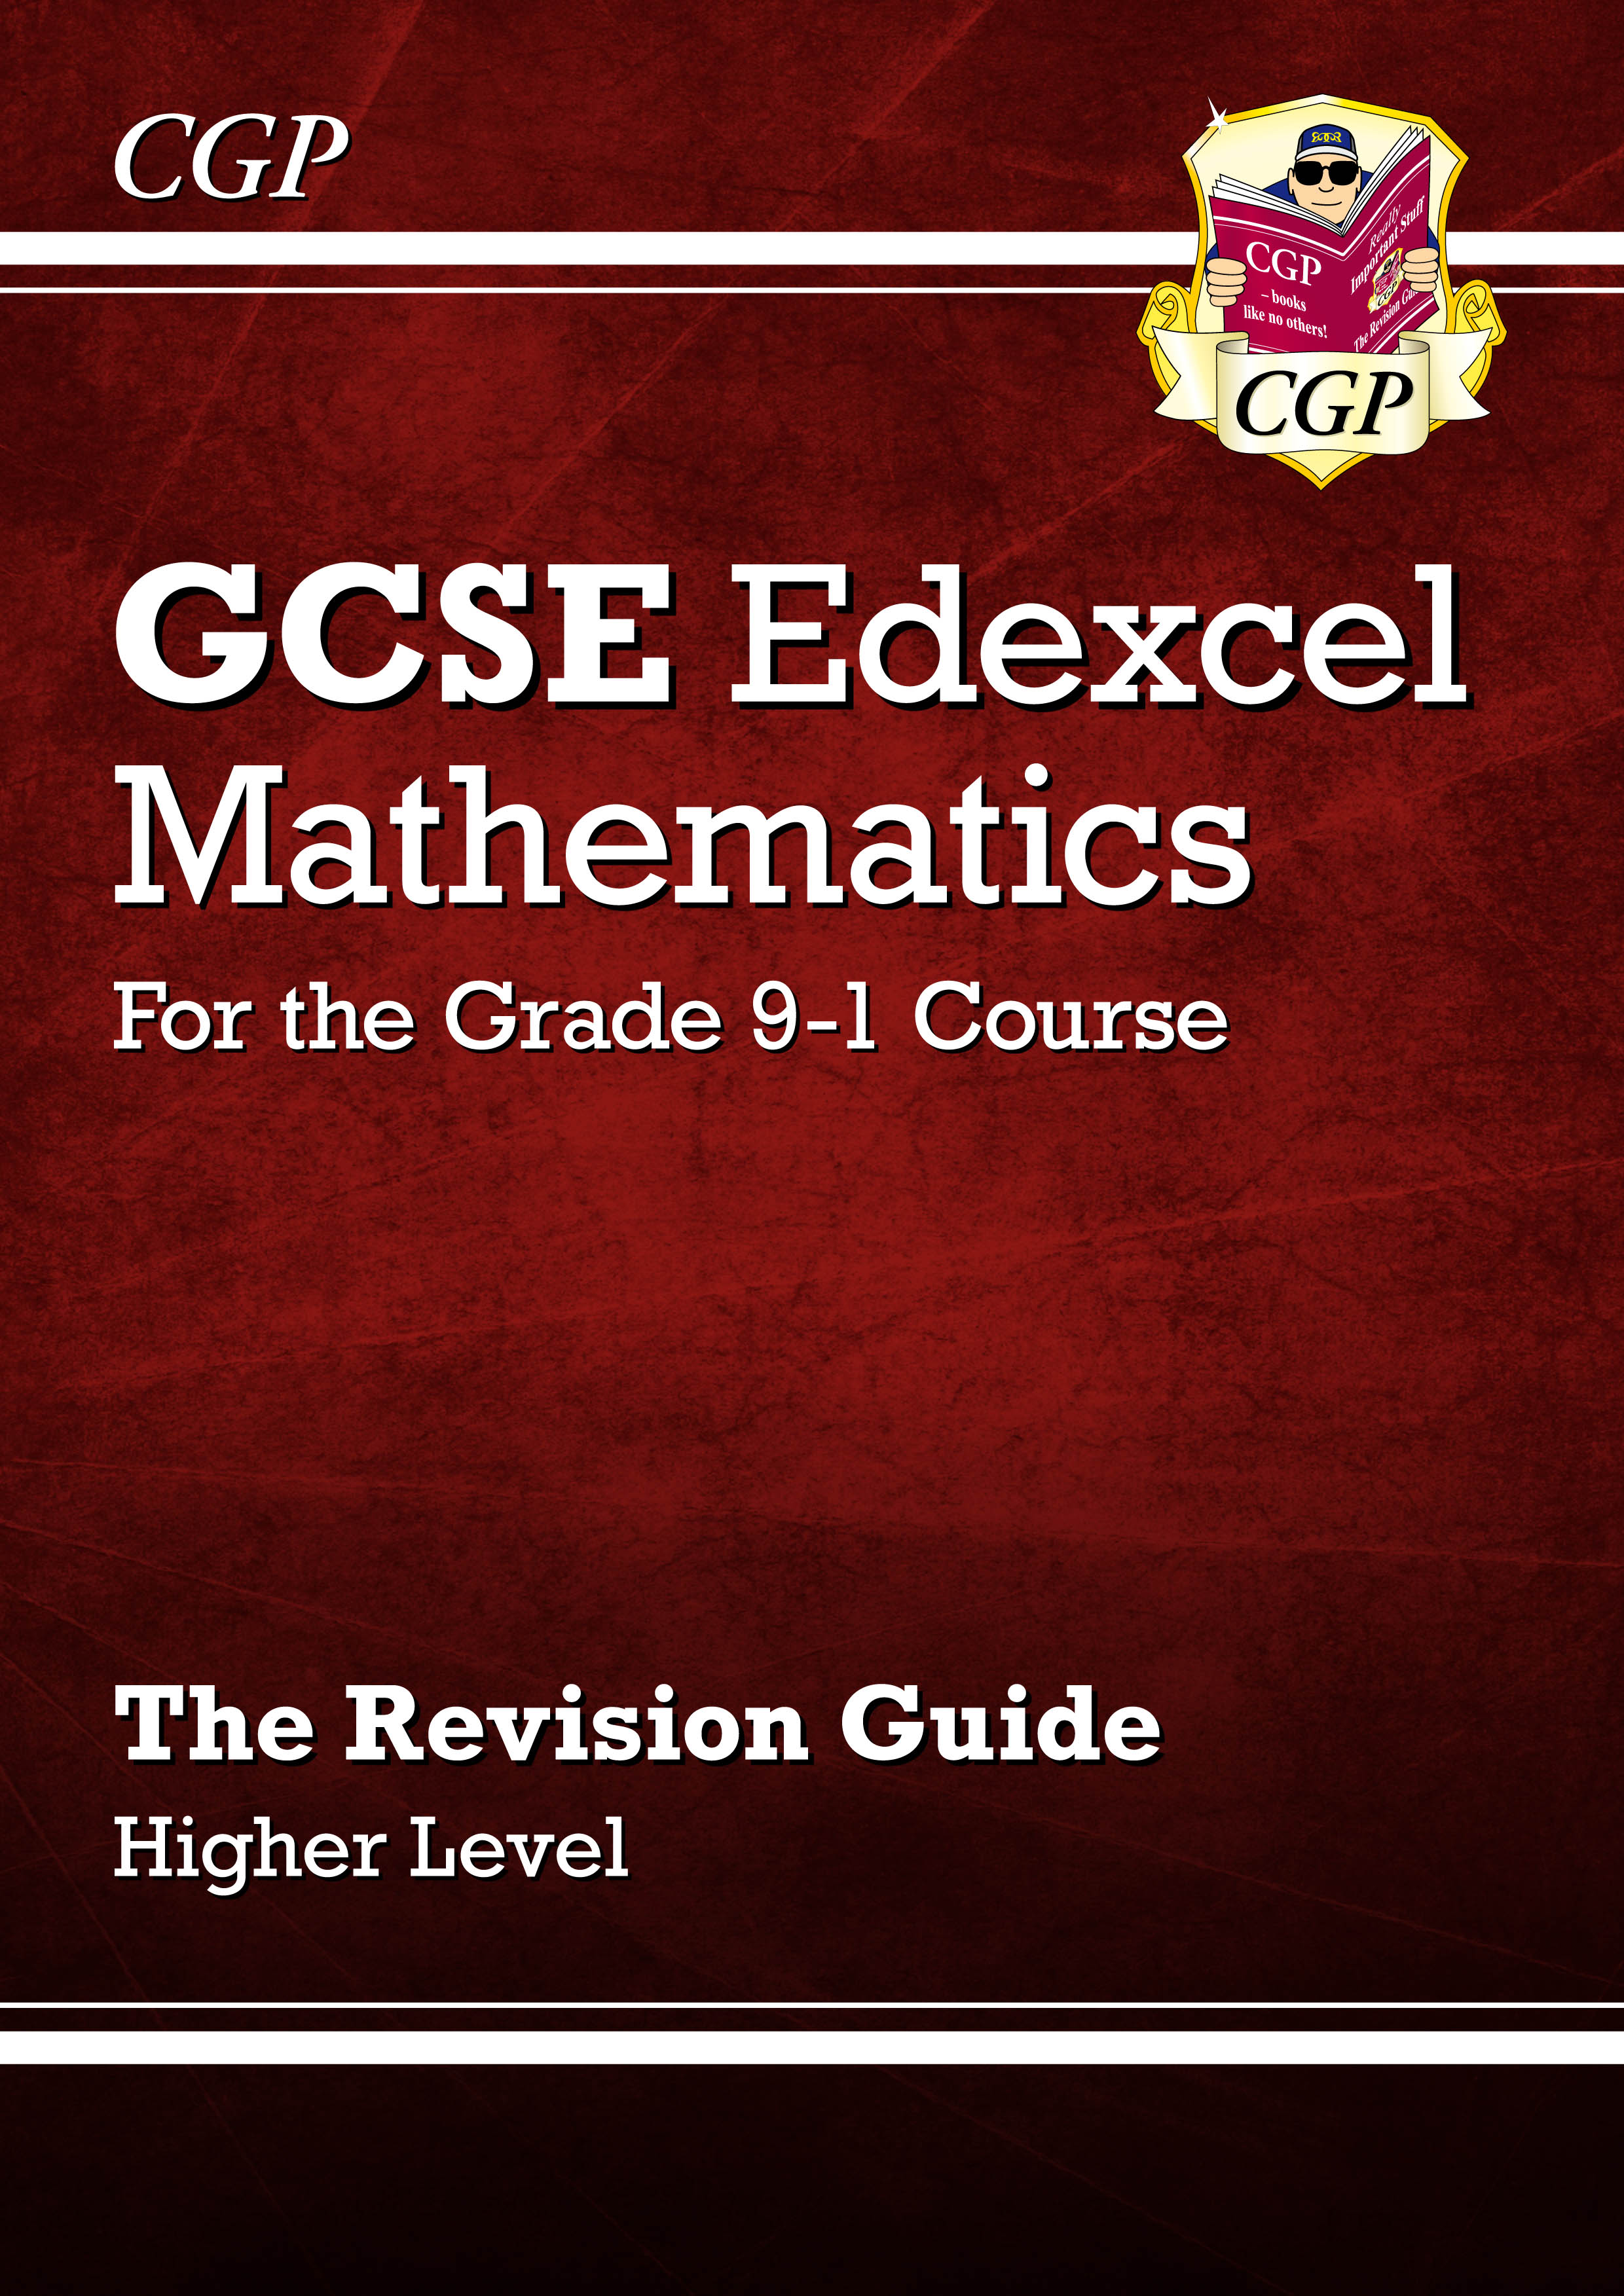 MXHR46DK - GCSE Maths Edexcel Revision Guide: Higher - for the Grade 9-1 Course